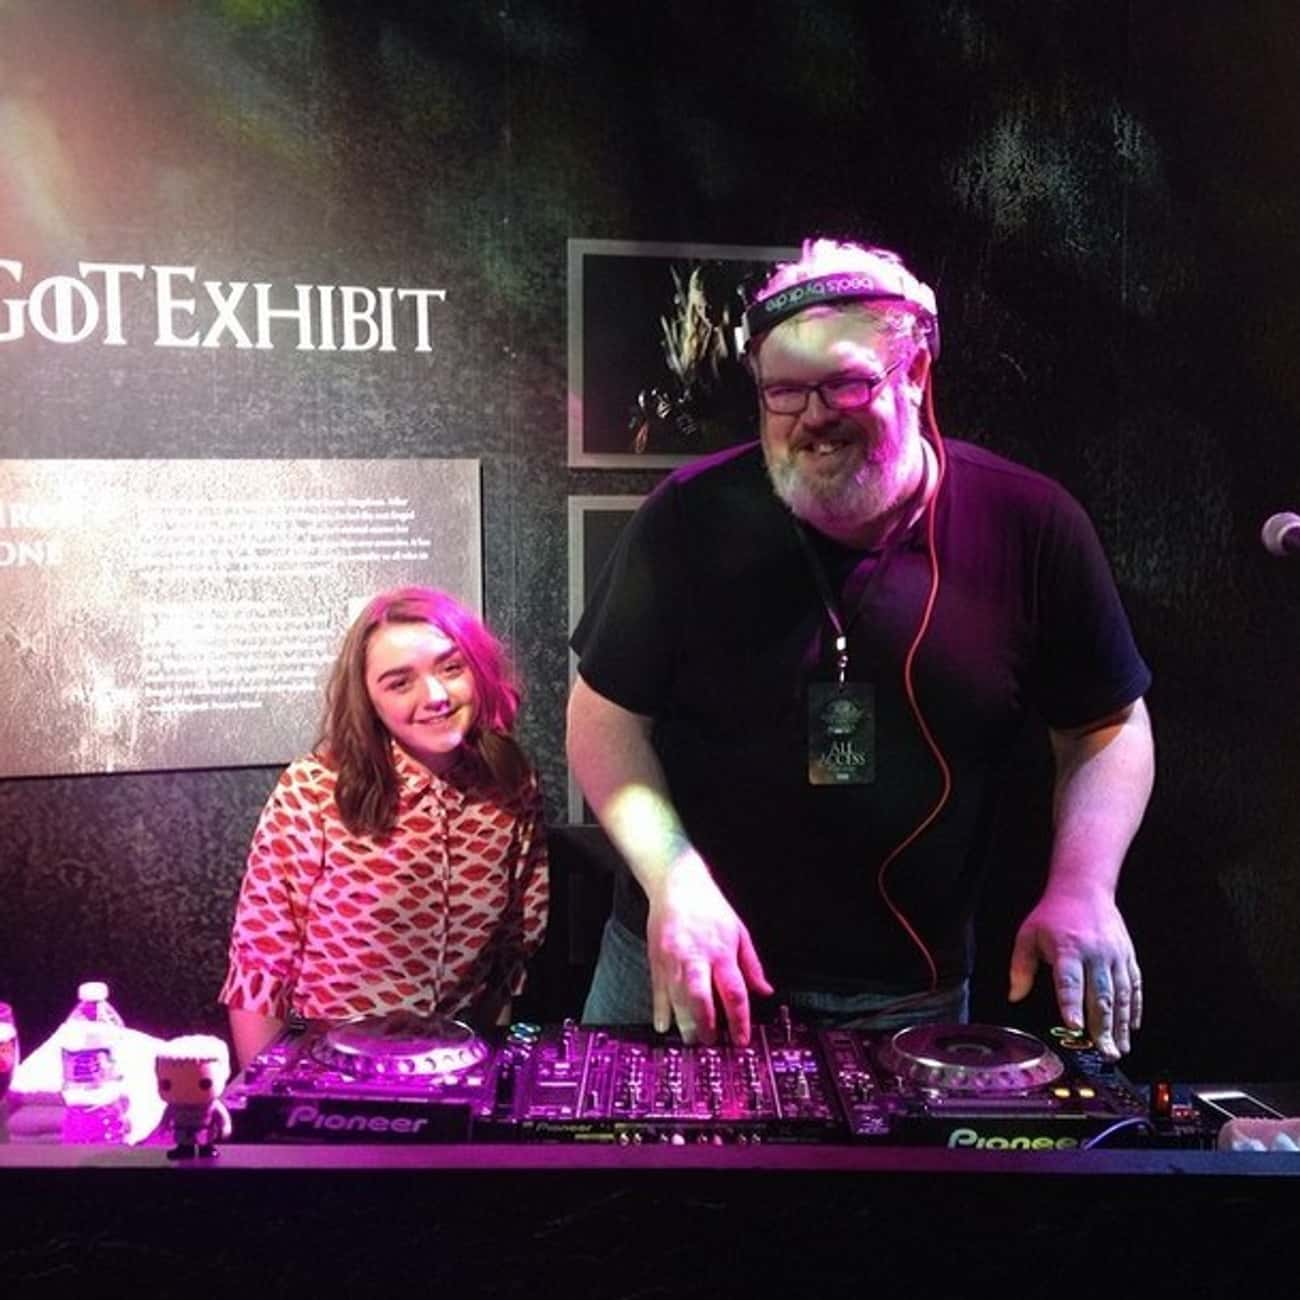 DJ Hodor Spinnin' Tunes is listed (or ranked) 4 on the list The Game of Thrones Actors in Real Life